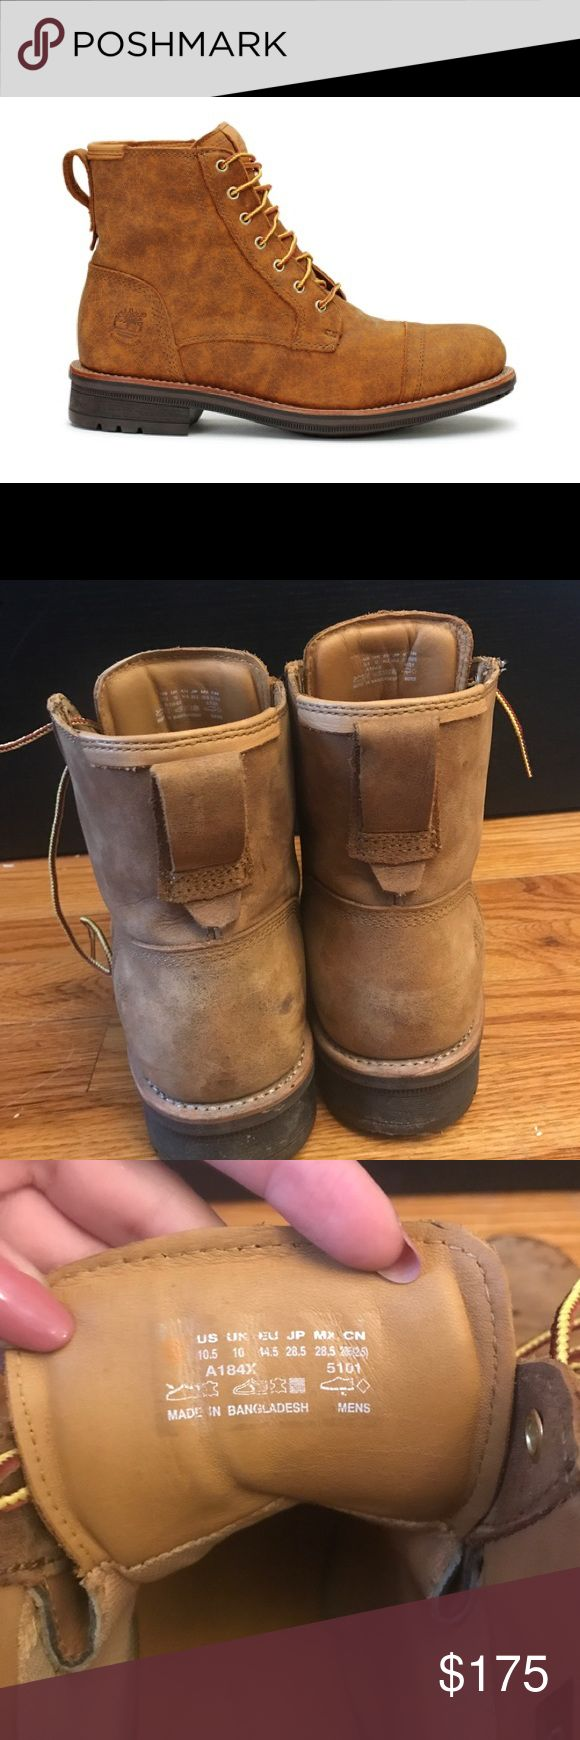 Mens Willoughby Wheat Waterproof A184x boots Timberland Mens BOOTS Willoughby 6 Inch Wheat Brown suade waterproof A184x They're brand new tried to wear them once and they were a size too small on me so I had to get bigger ones and couldn't return these Timberland Shoes Boots